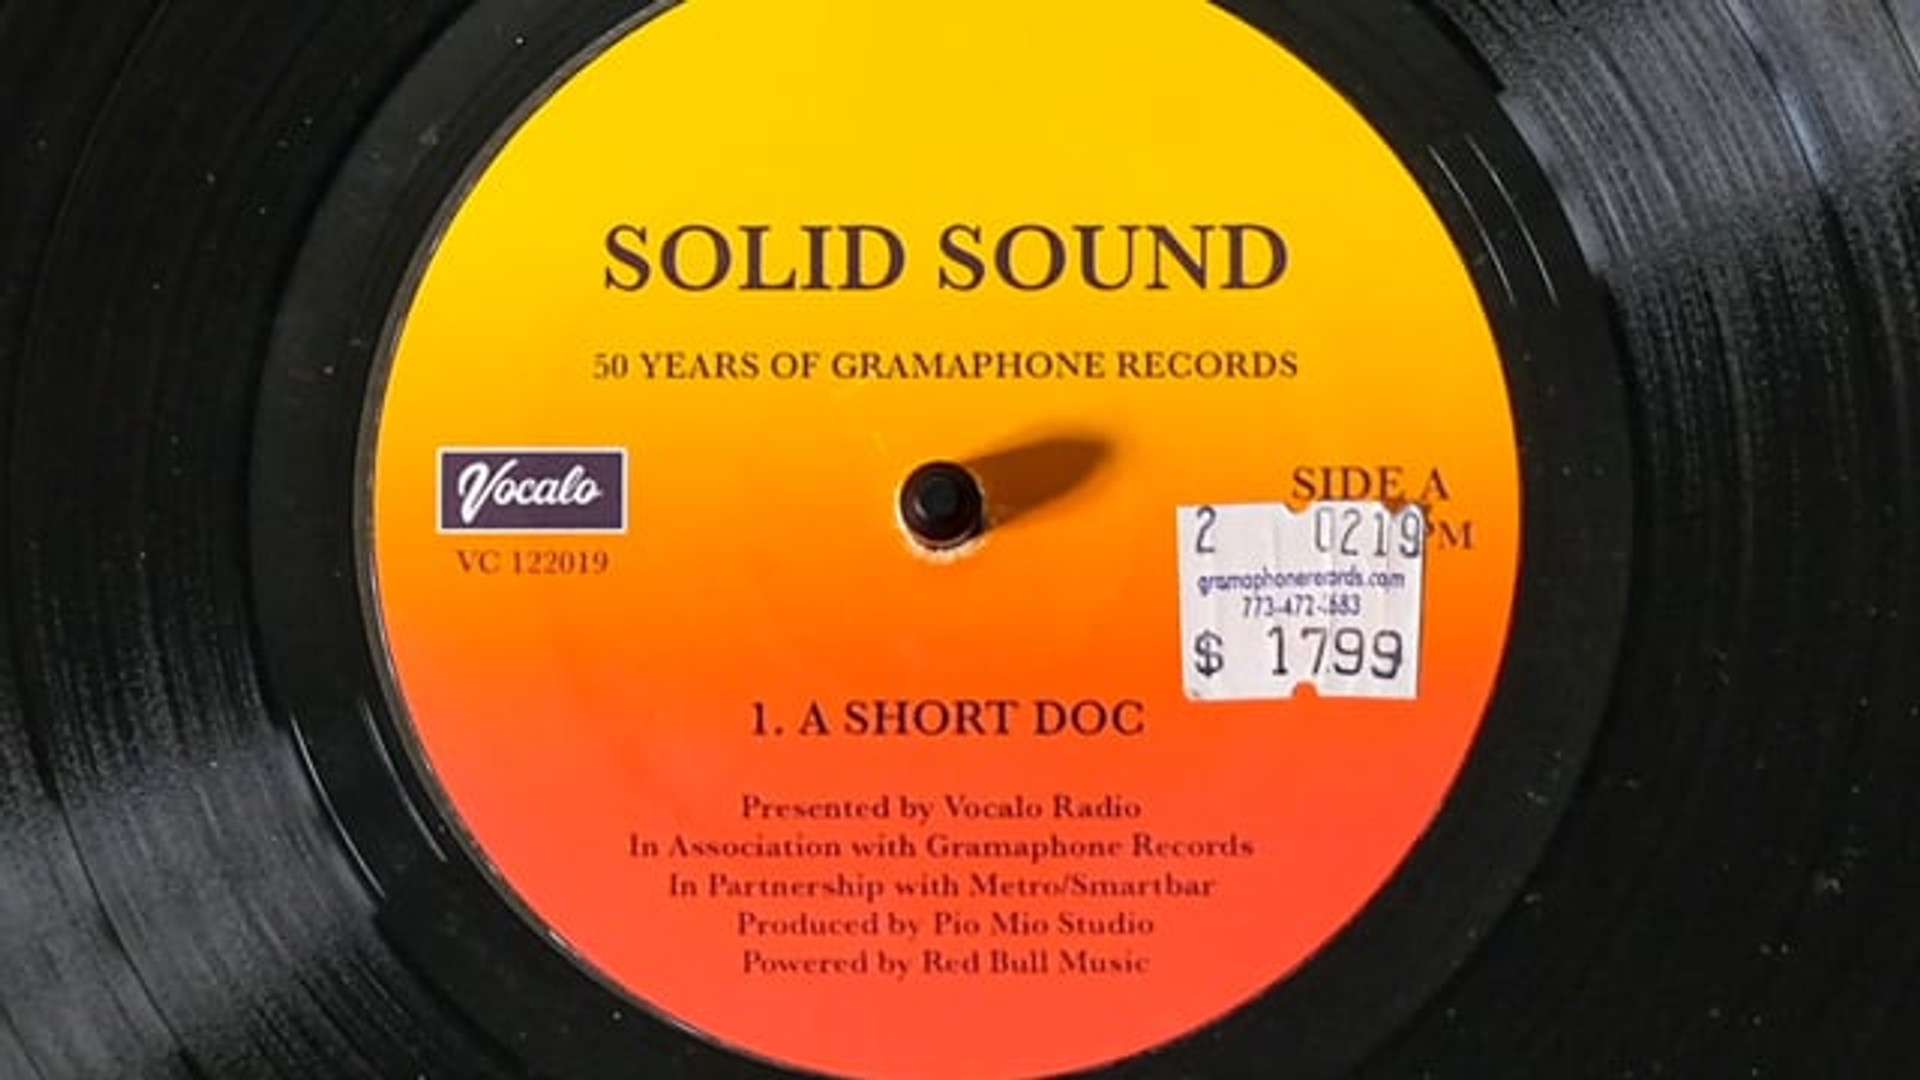 Solid Sound: 50 Years of Gramaphone Records | A Mini-Documentary